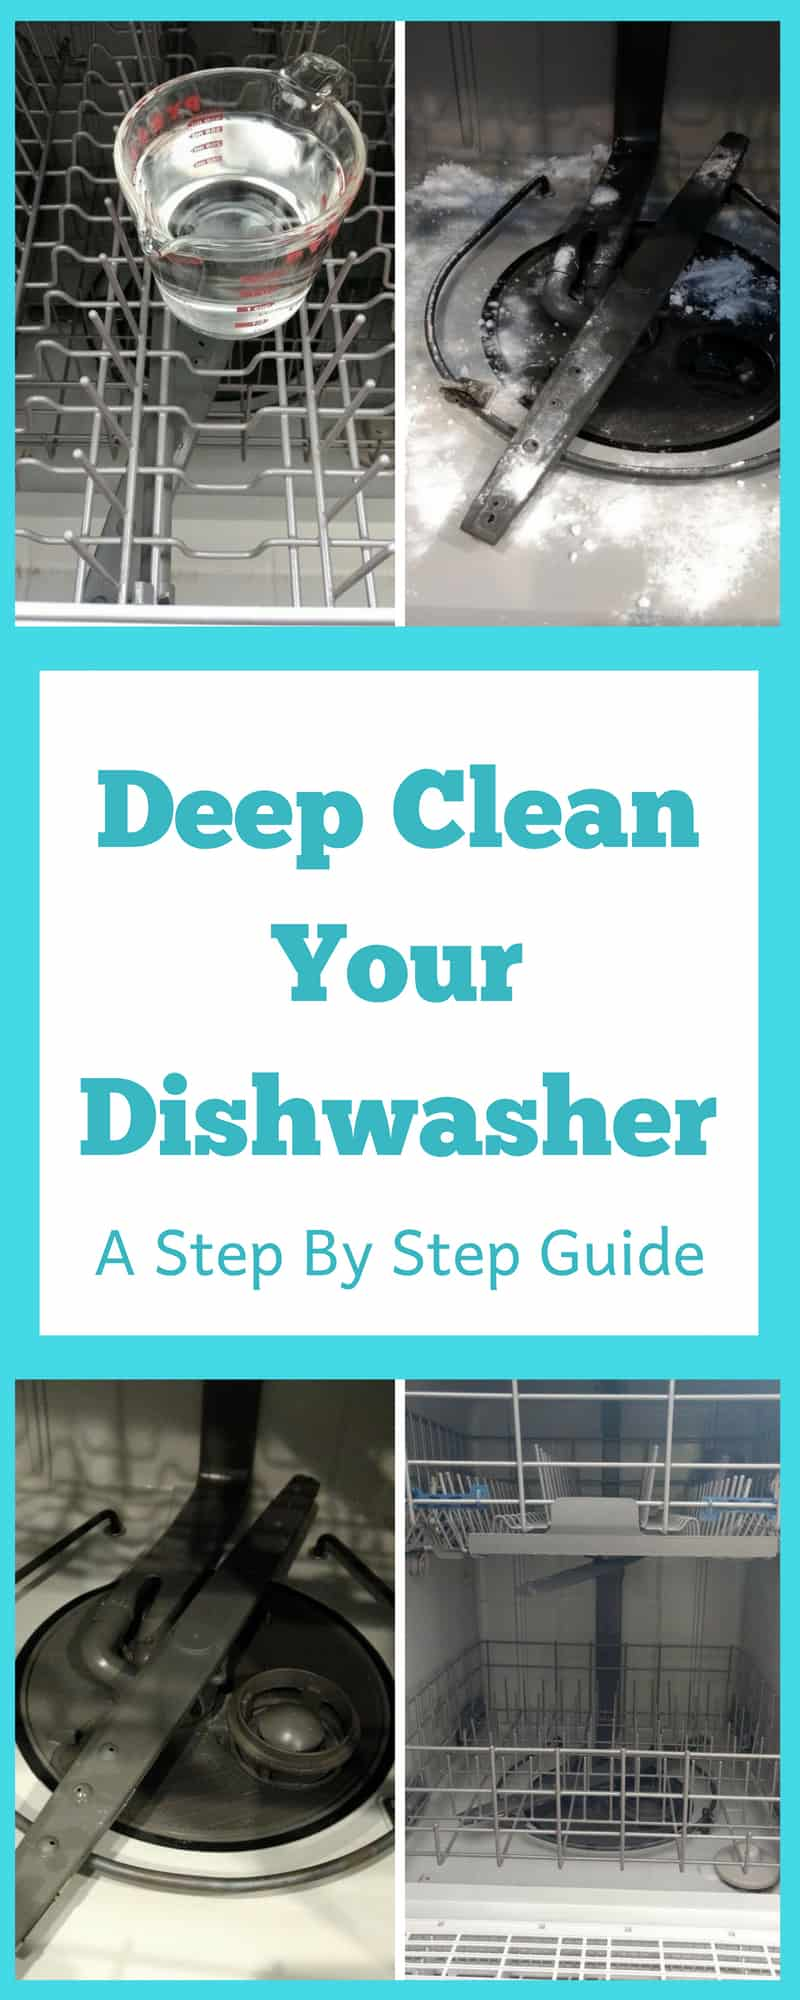 Easy Steps for Great Dishwasher Maintenance